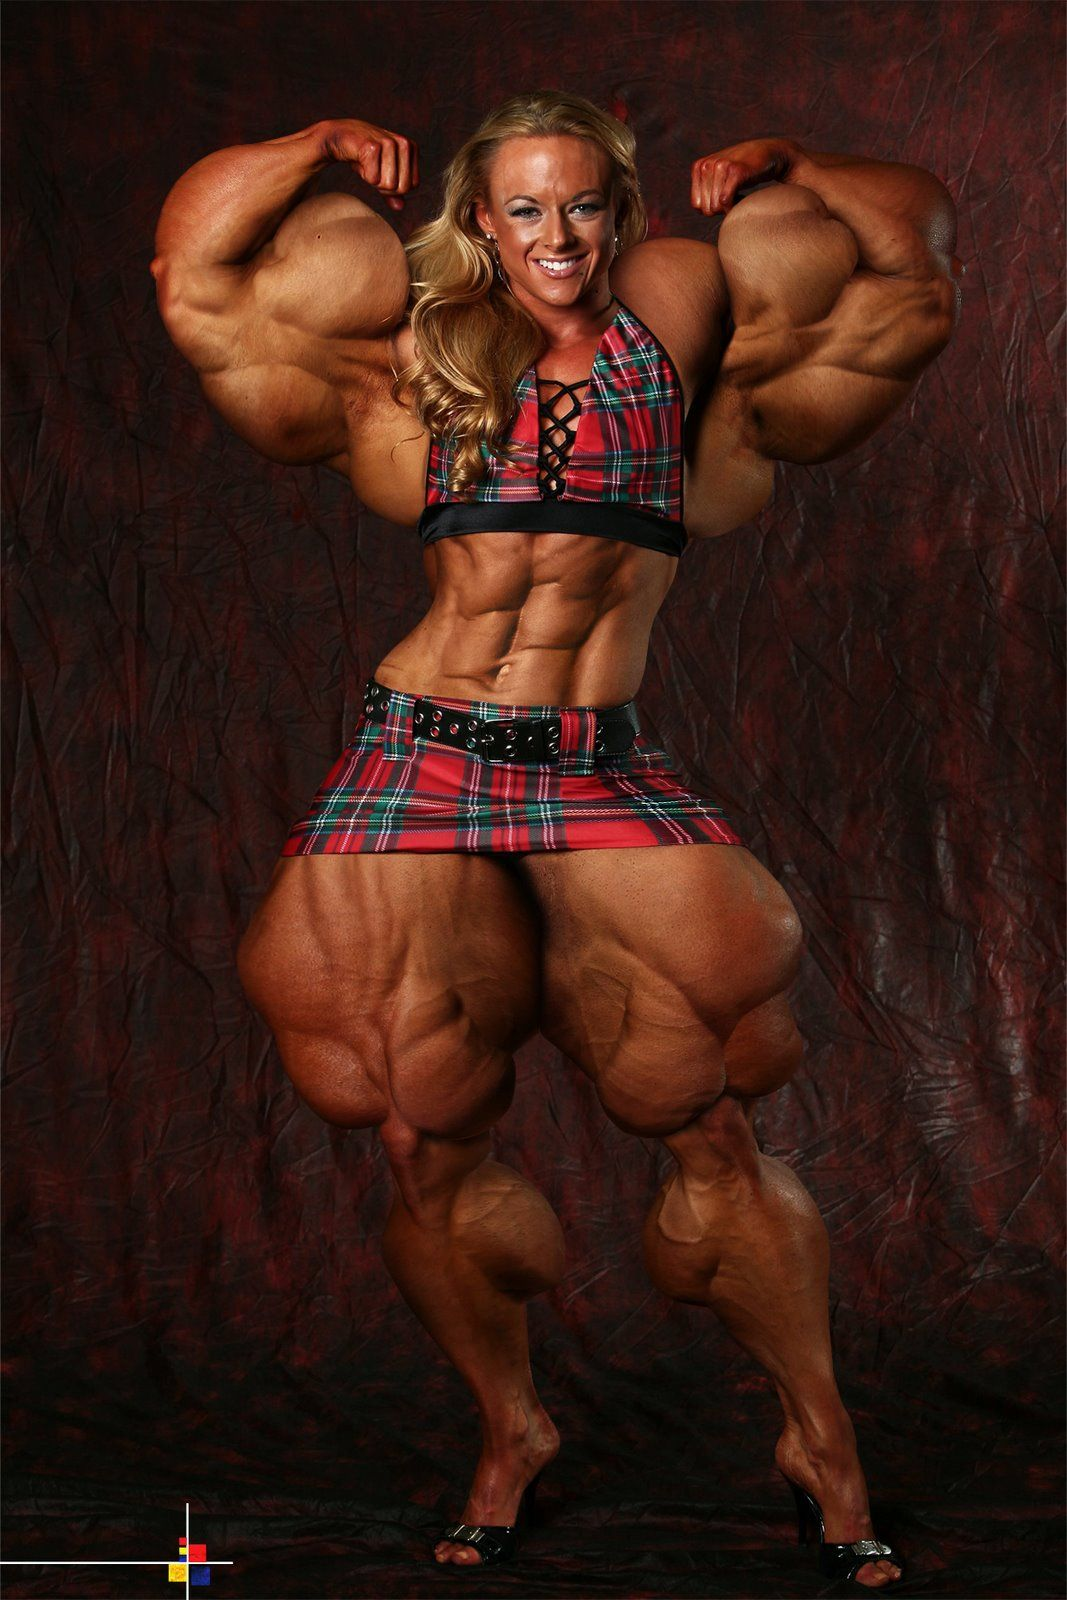 Female Muscle Morph  Morphs  Femalemuscleart  Body -4812